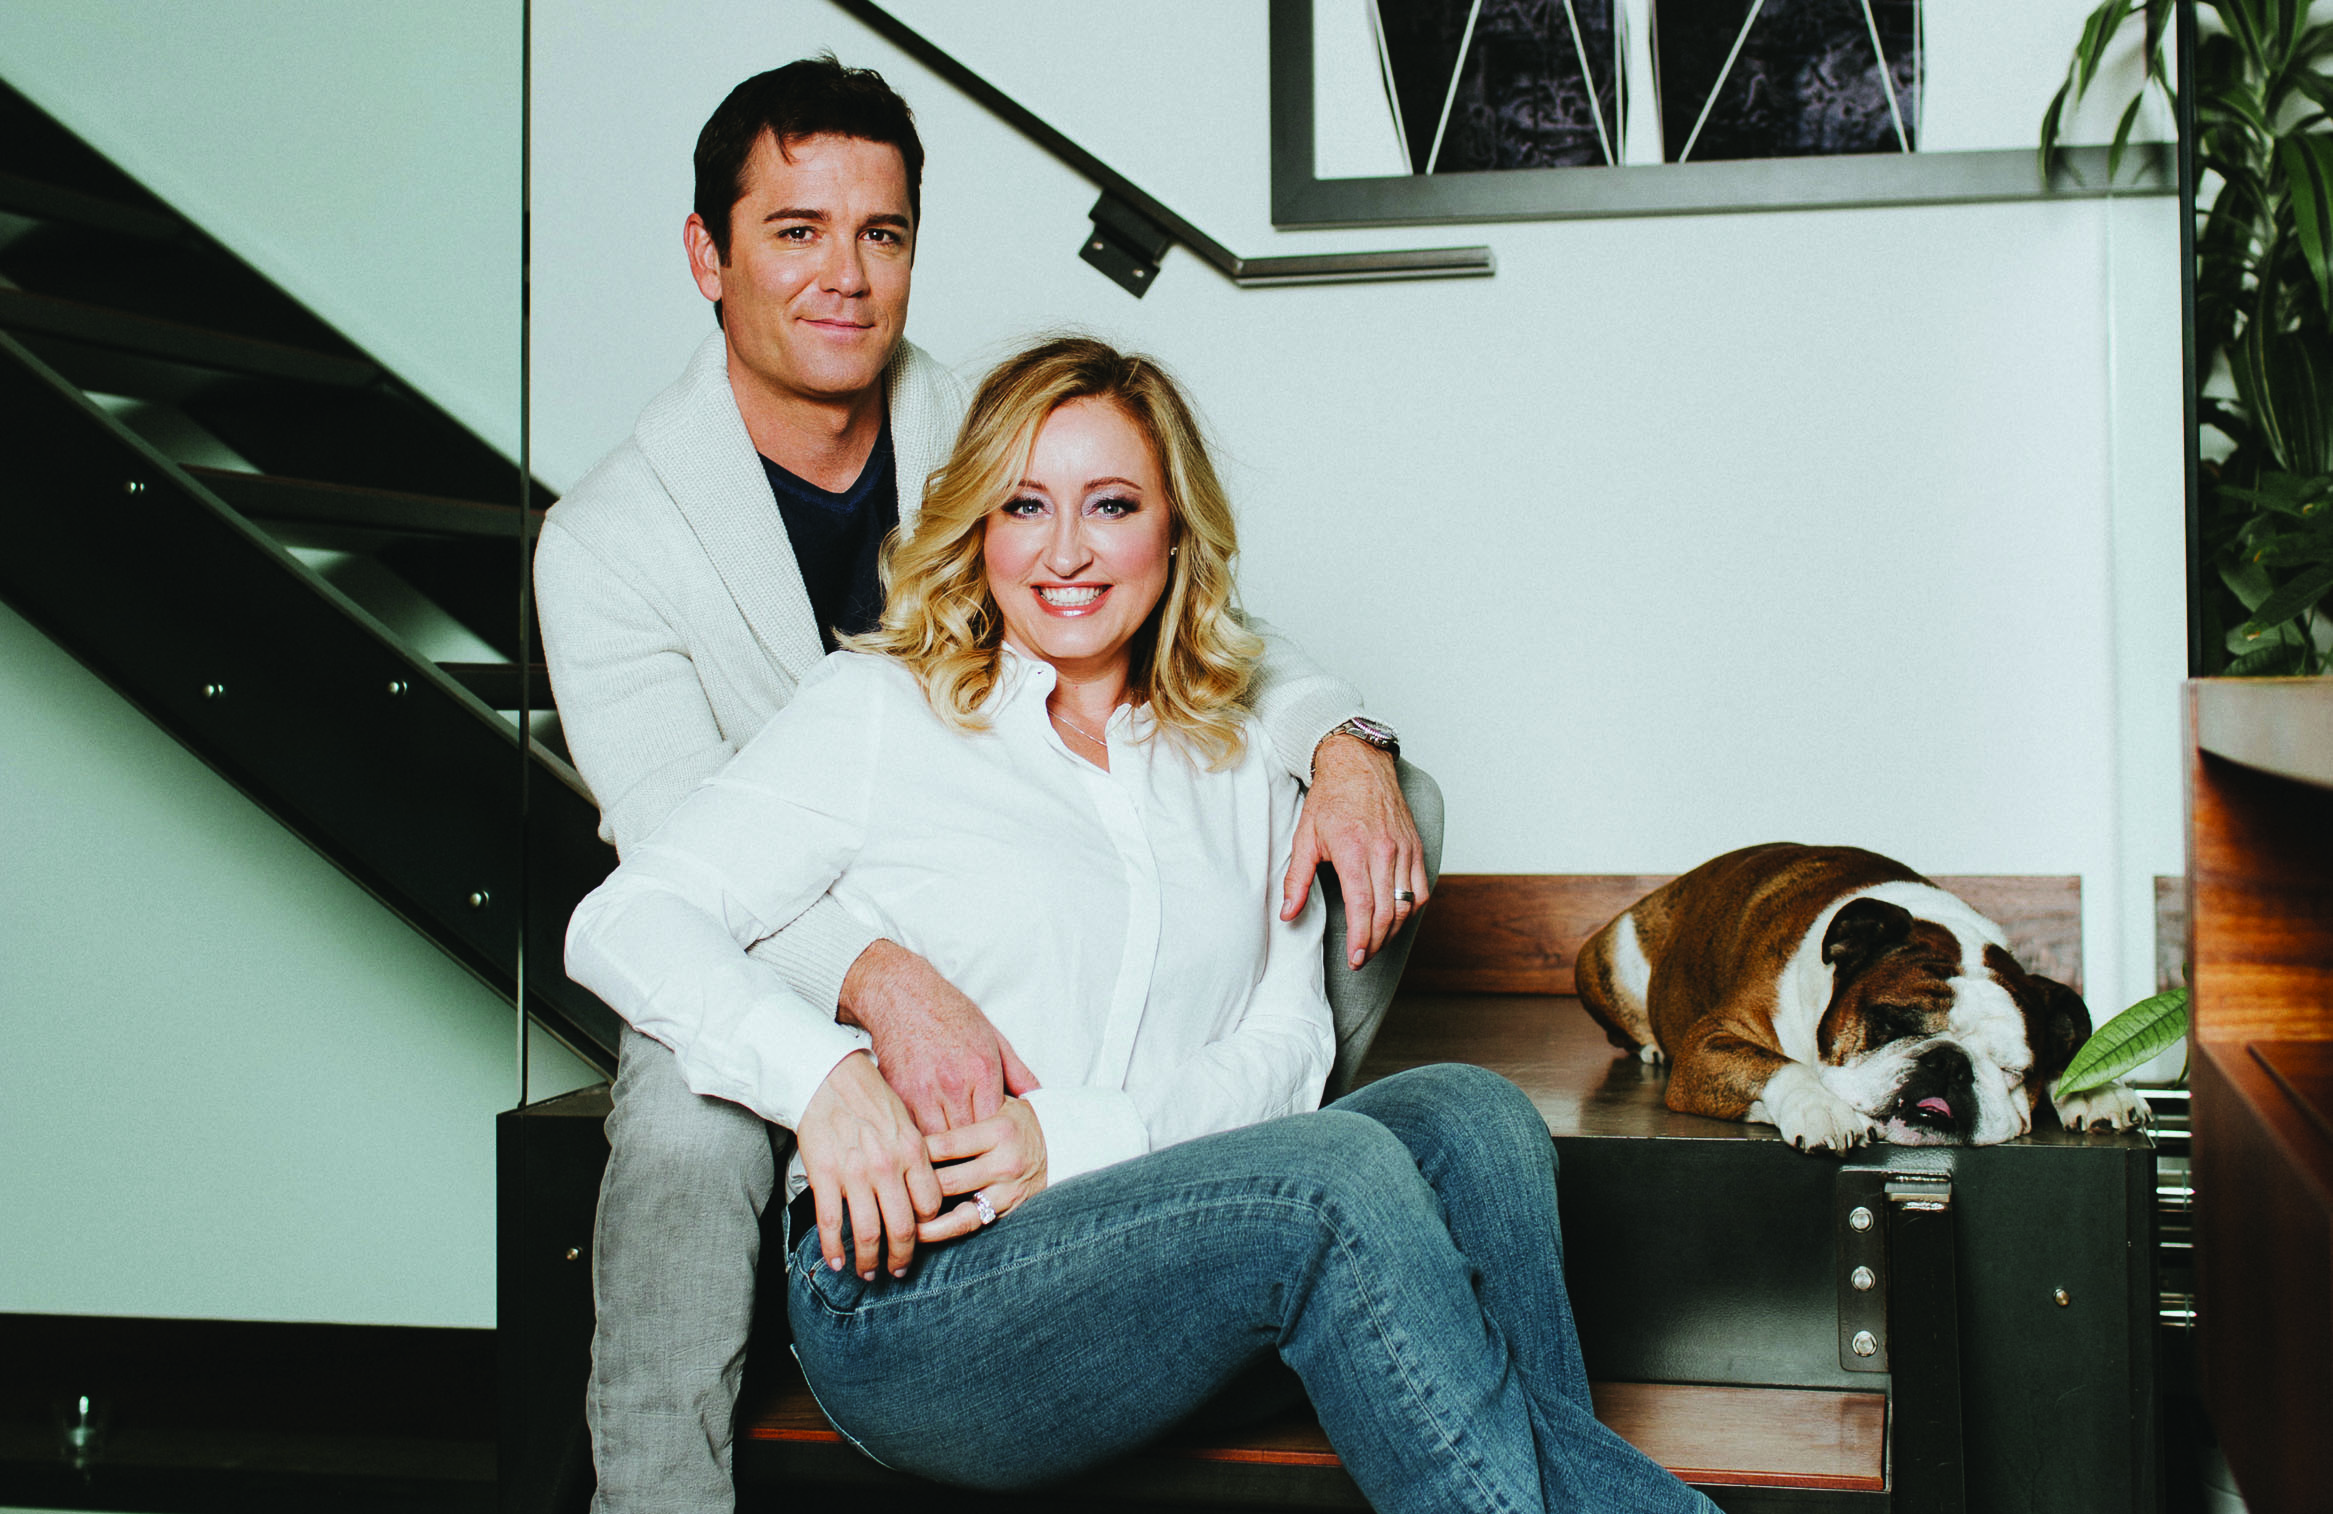 Yannick Bisson pictured smiling with his wife